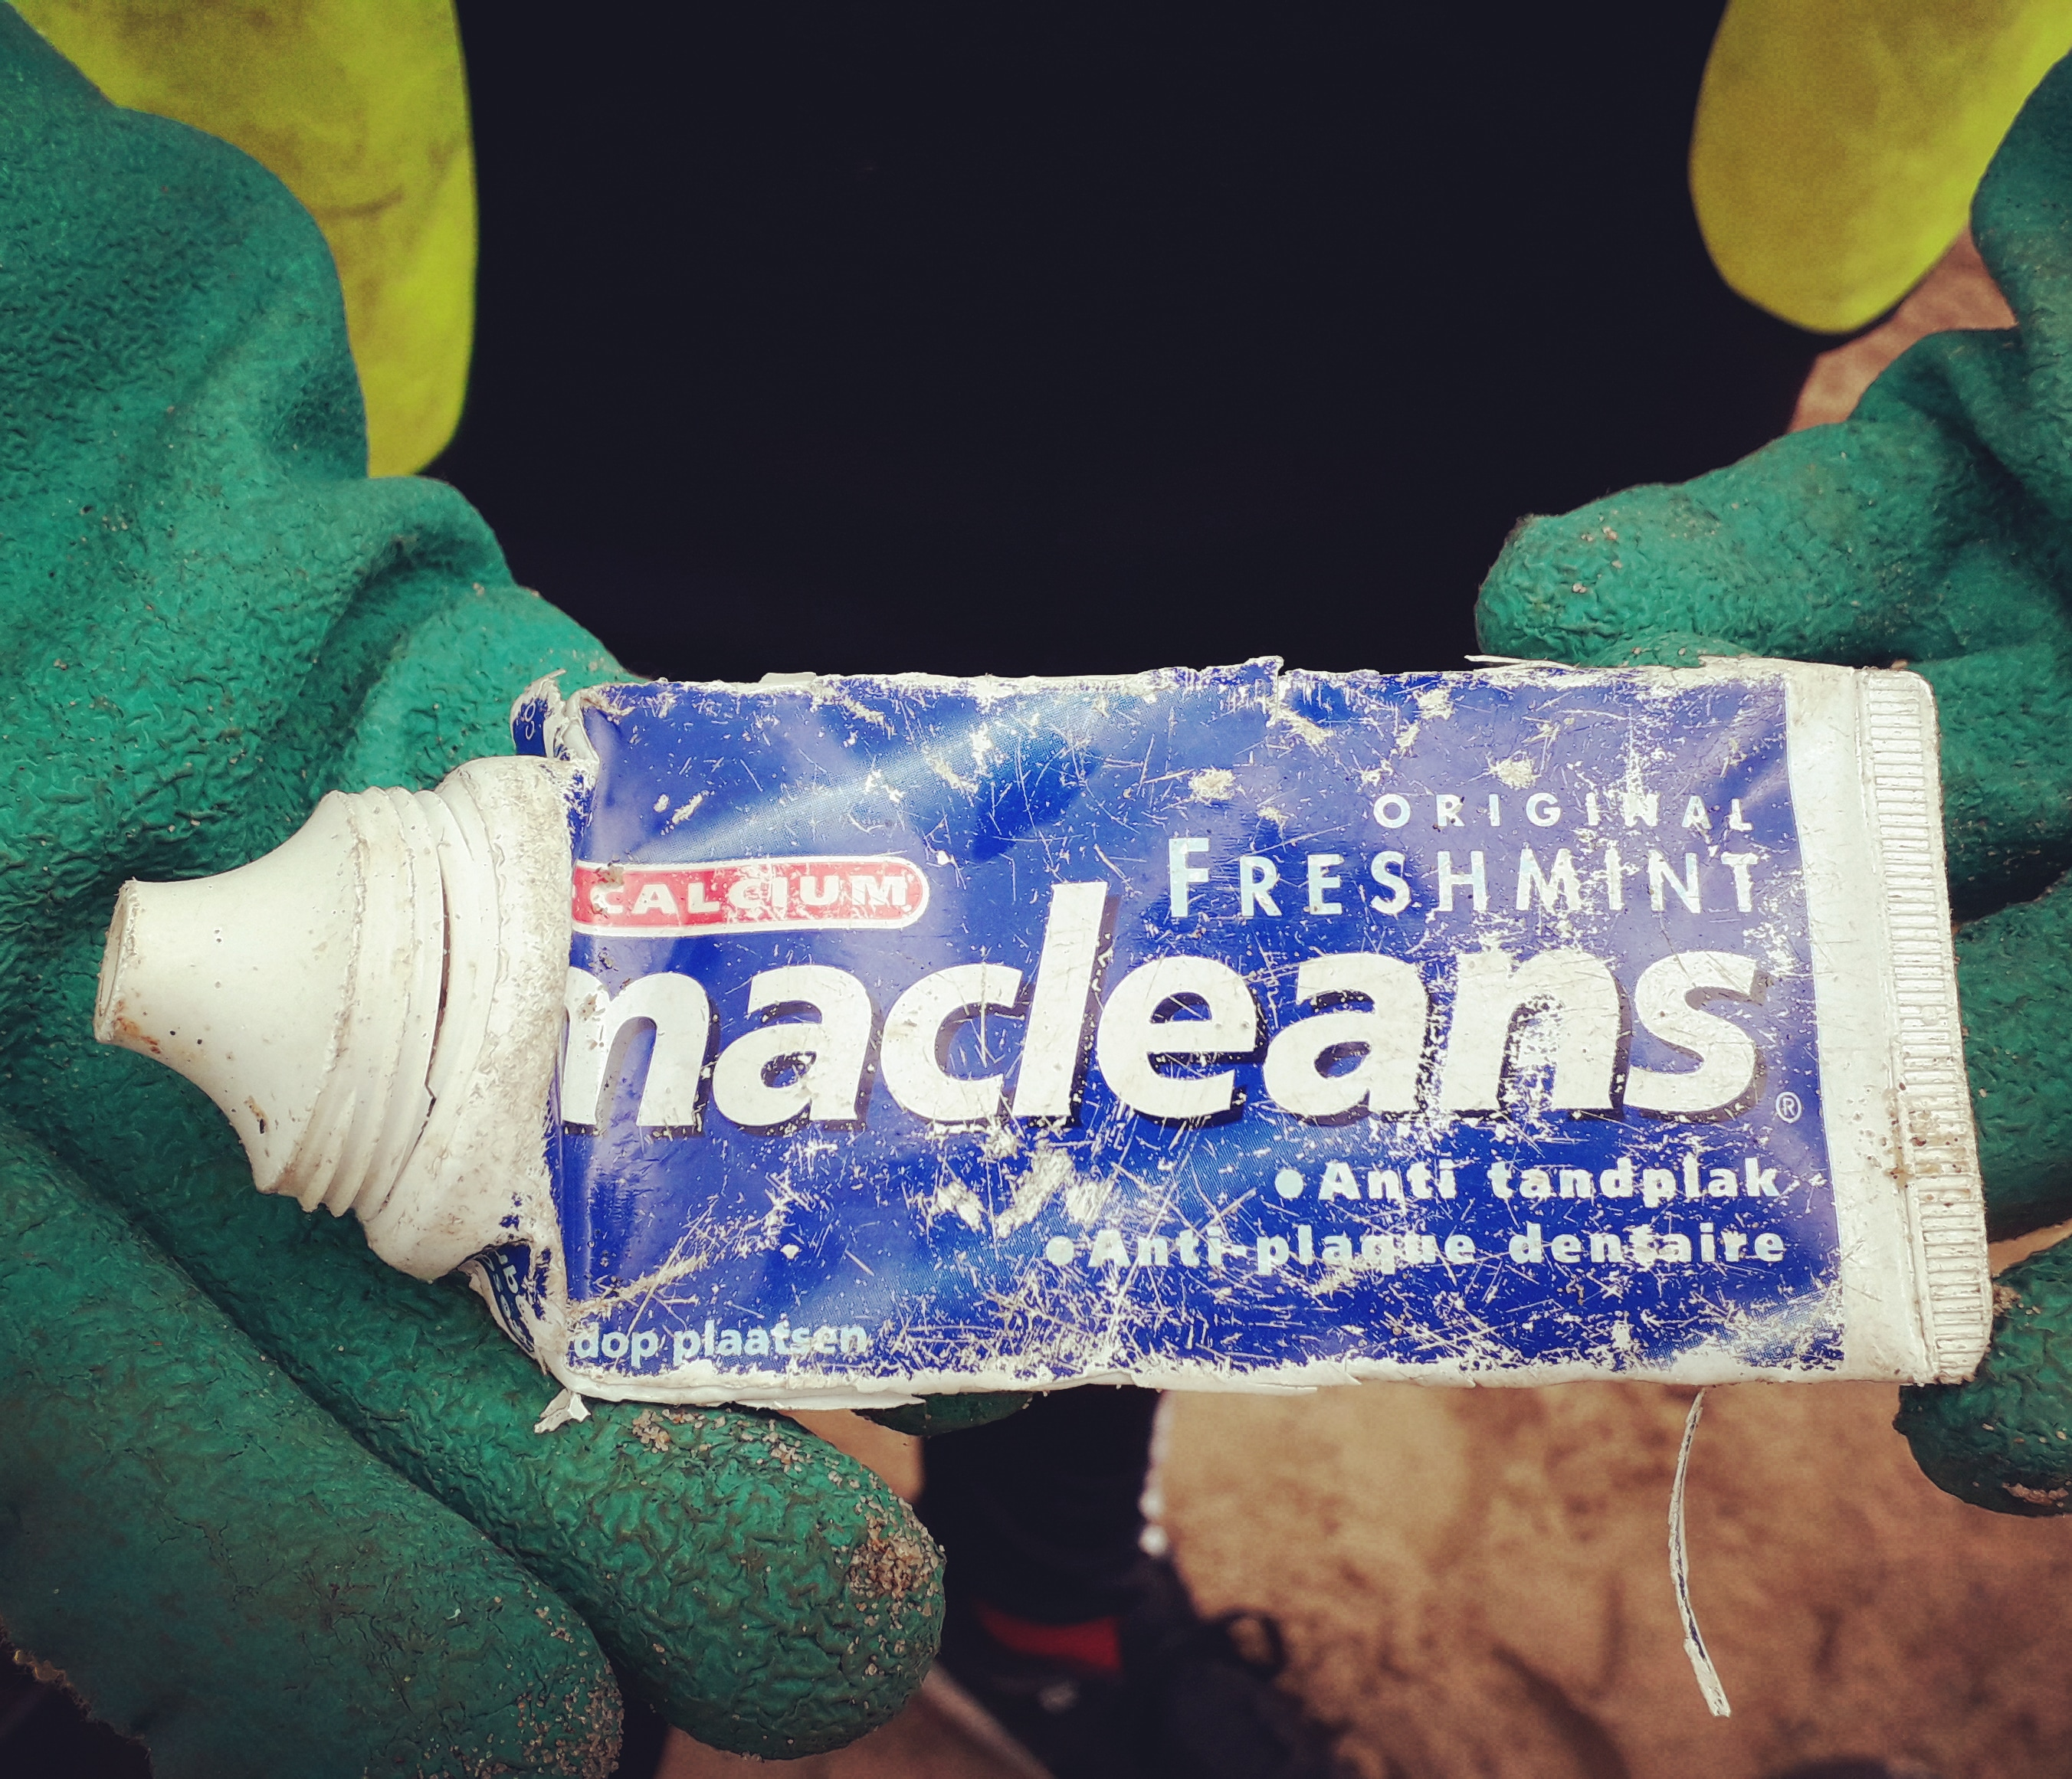 How old is this toothpaste tube? Plus it's from the Netherlands!